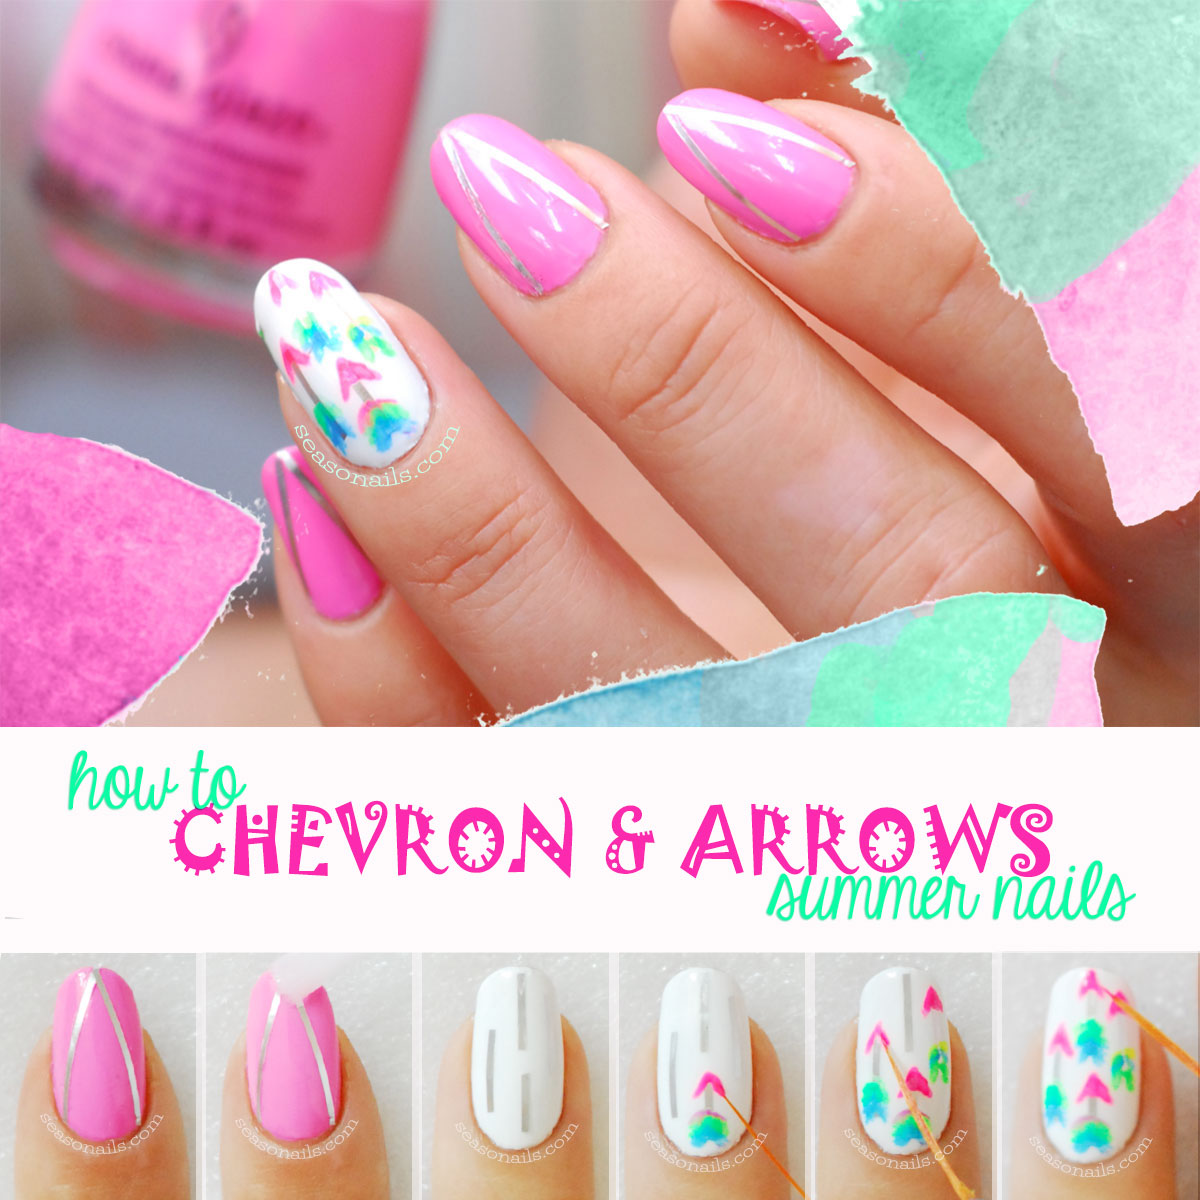 how to chevron arrows summer nail art tutorial